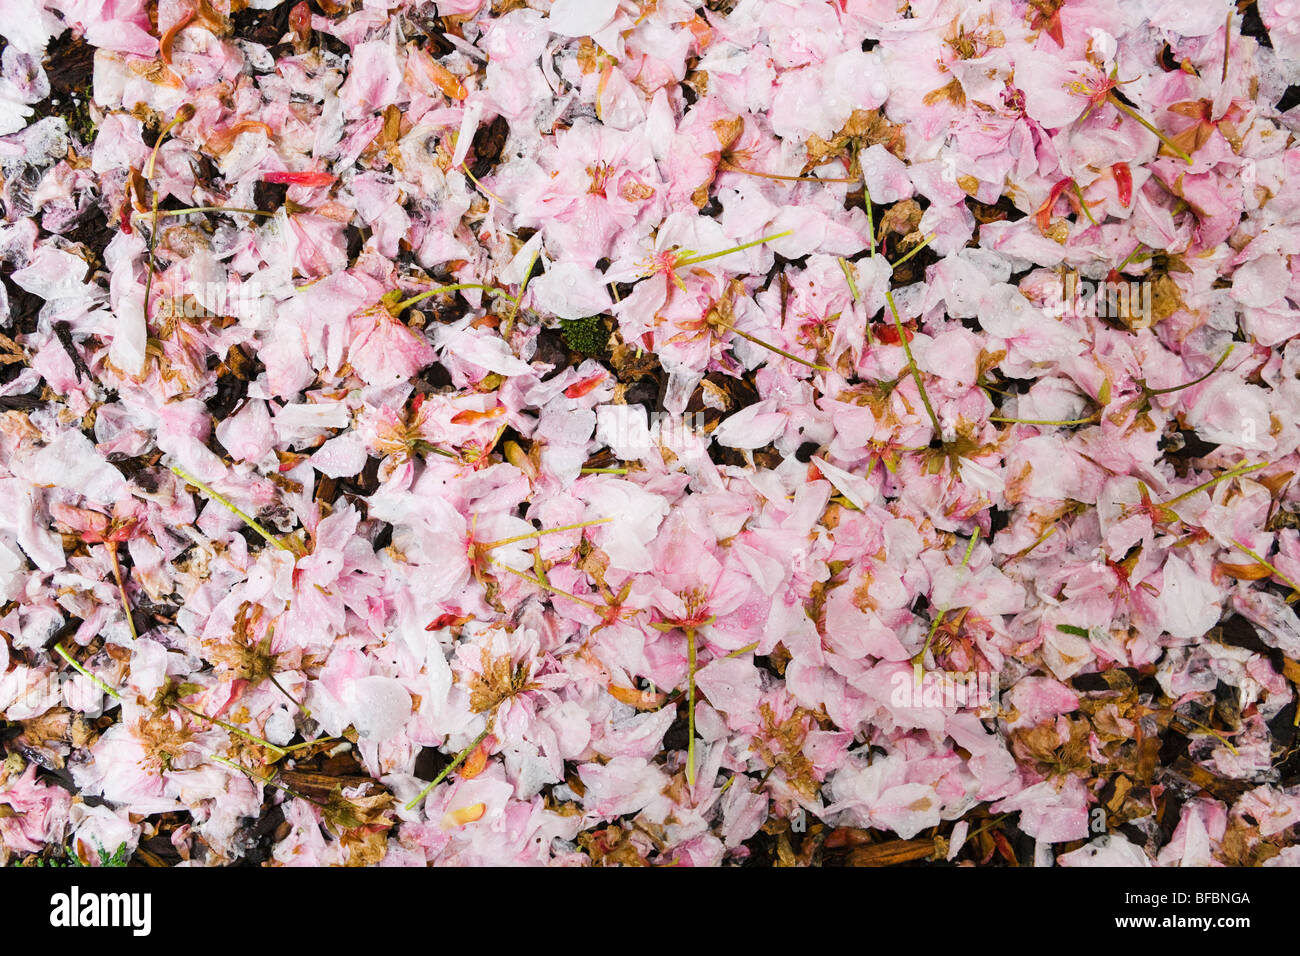 Cherry tree blossoms deteriorating on the ground after falling from the tree. - Stock Image